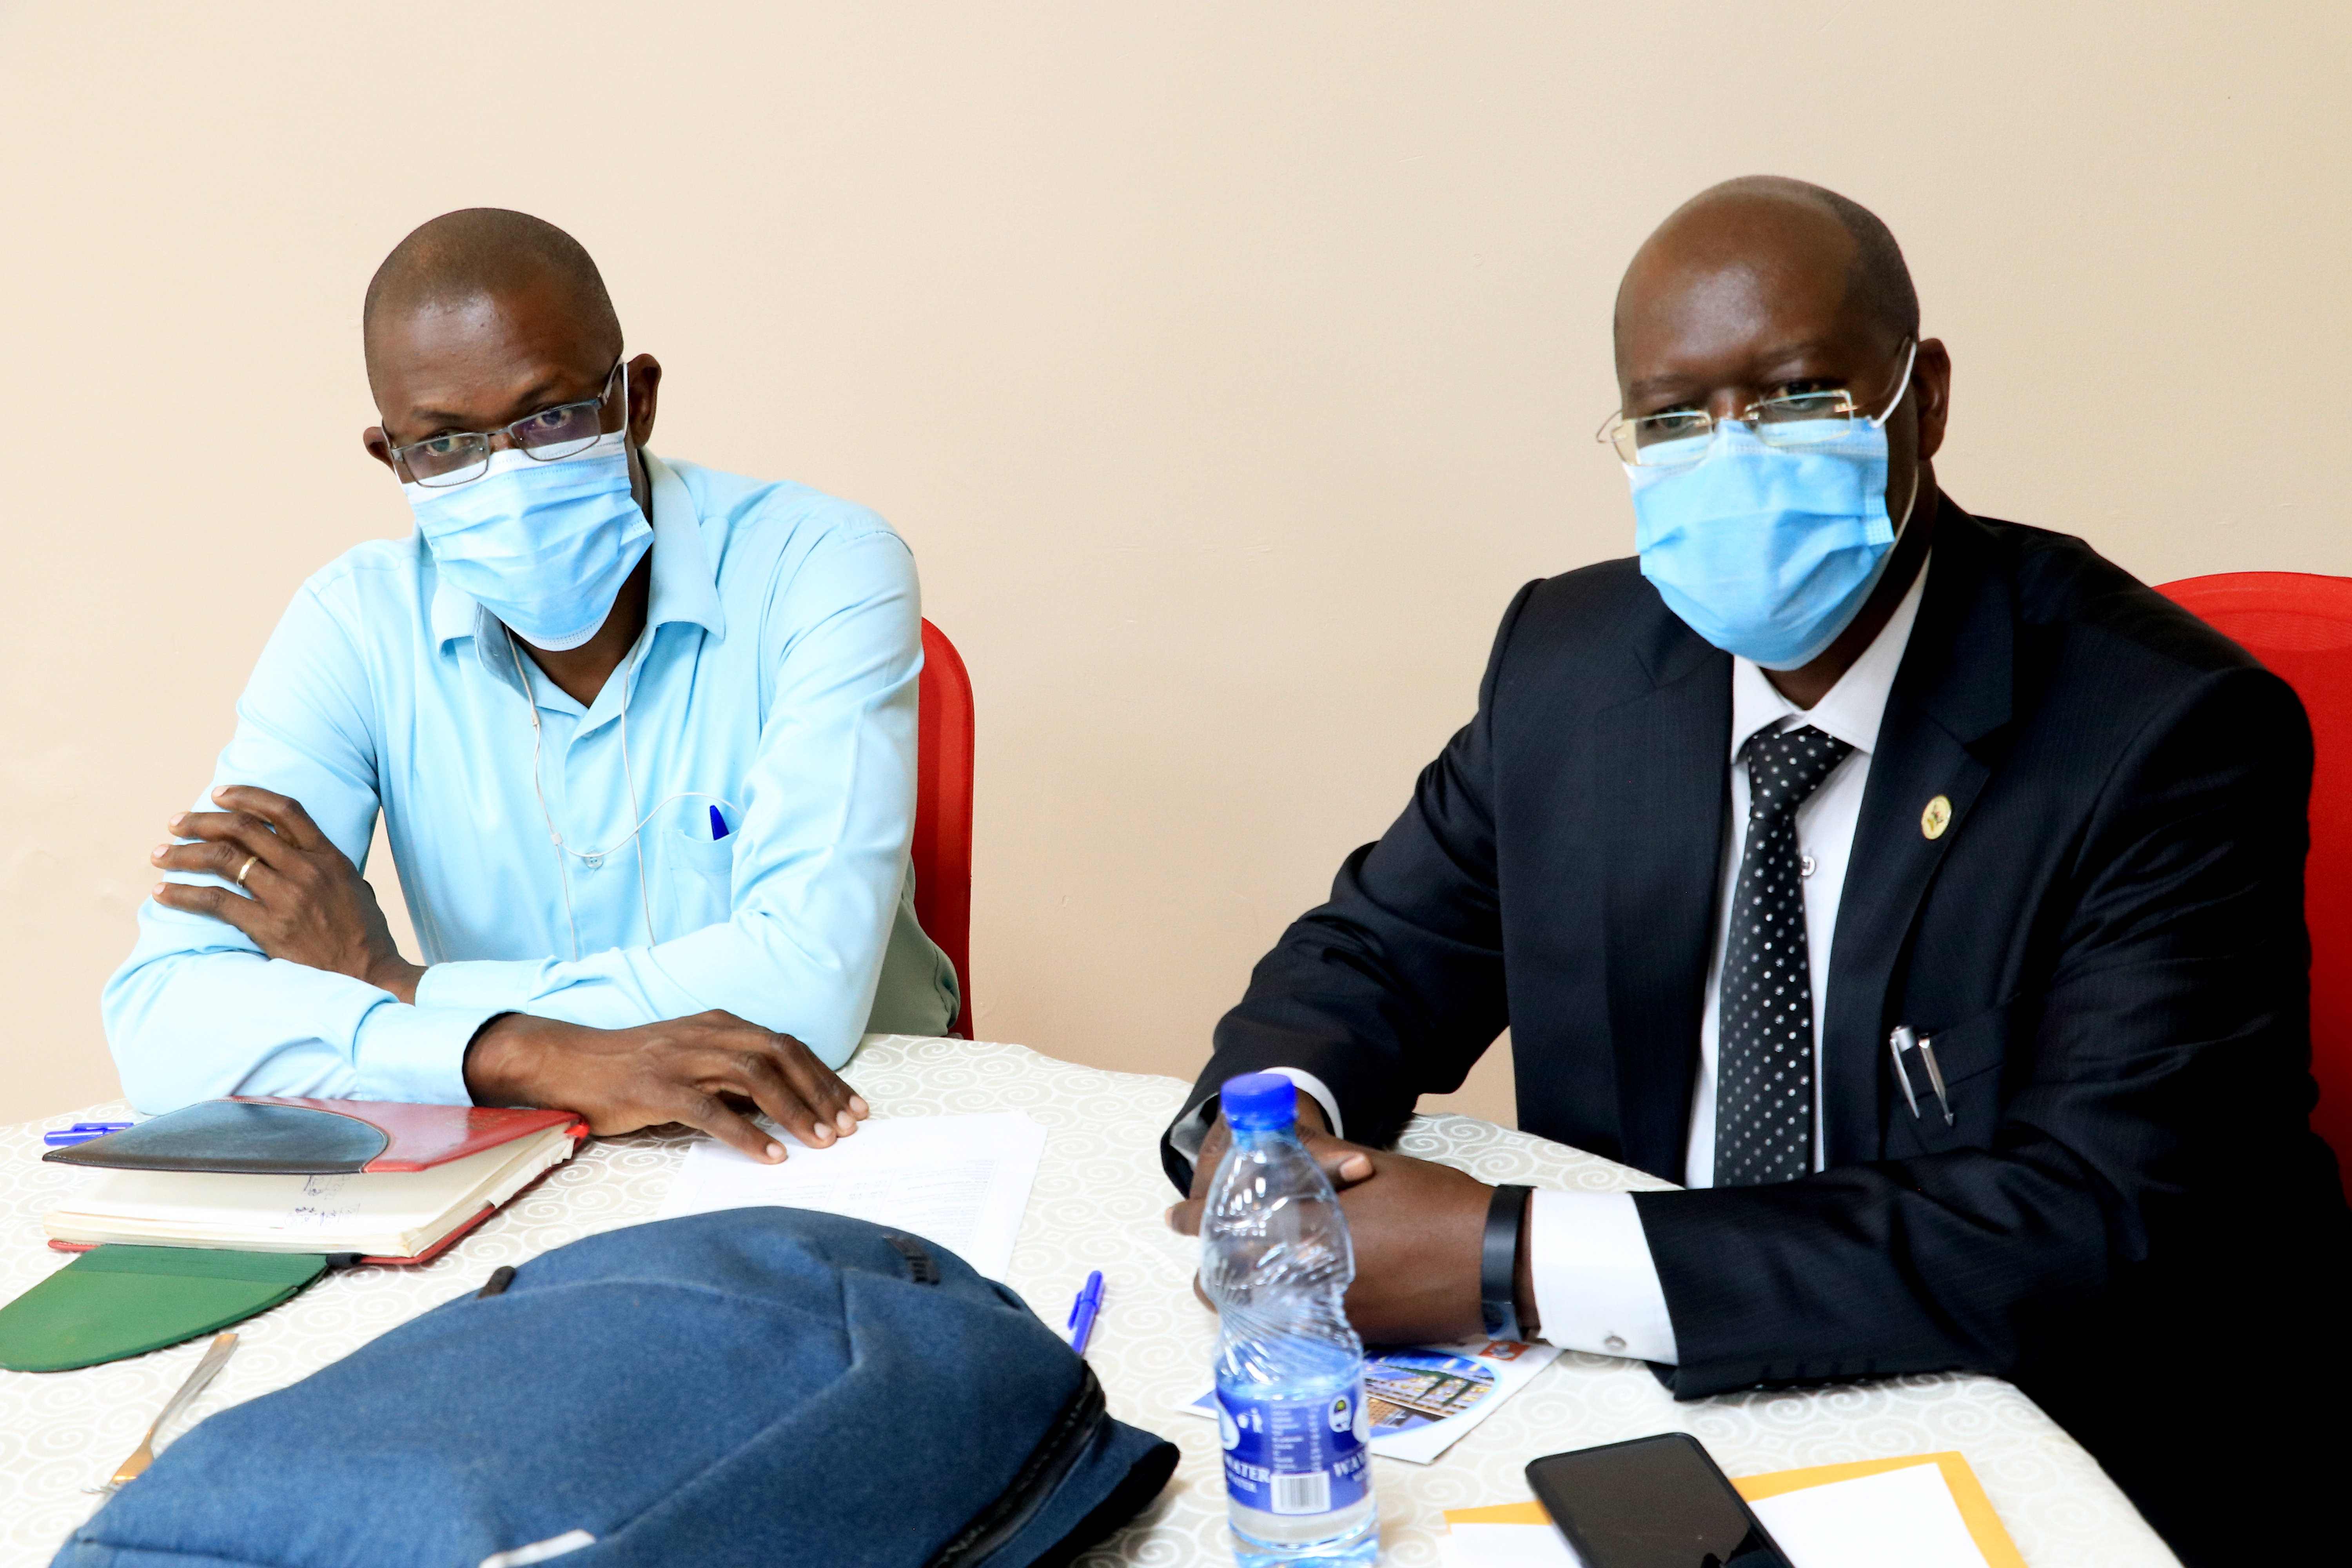 Dr. Lynn Atuyambe, an air quality specialist and associate Professor at Makerere School of Public Health together with MakSPH's research associate Samuel Etajak